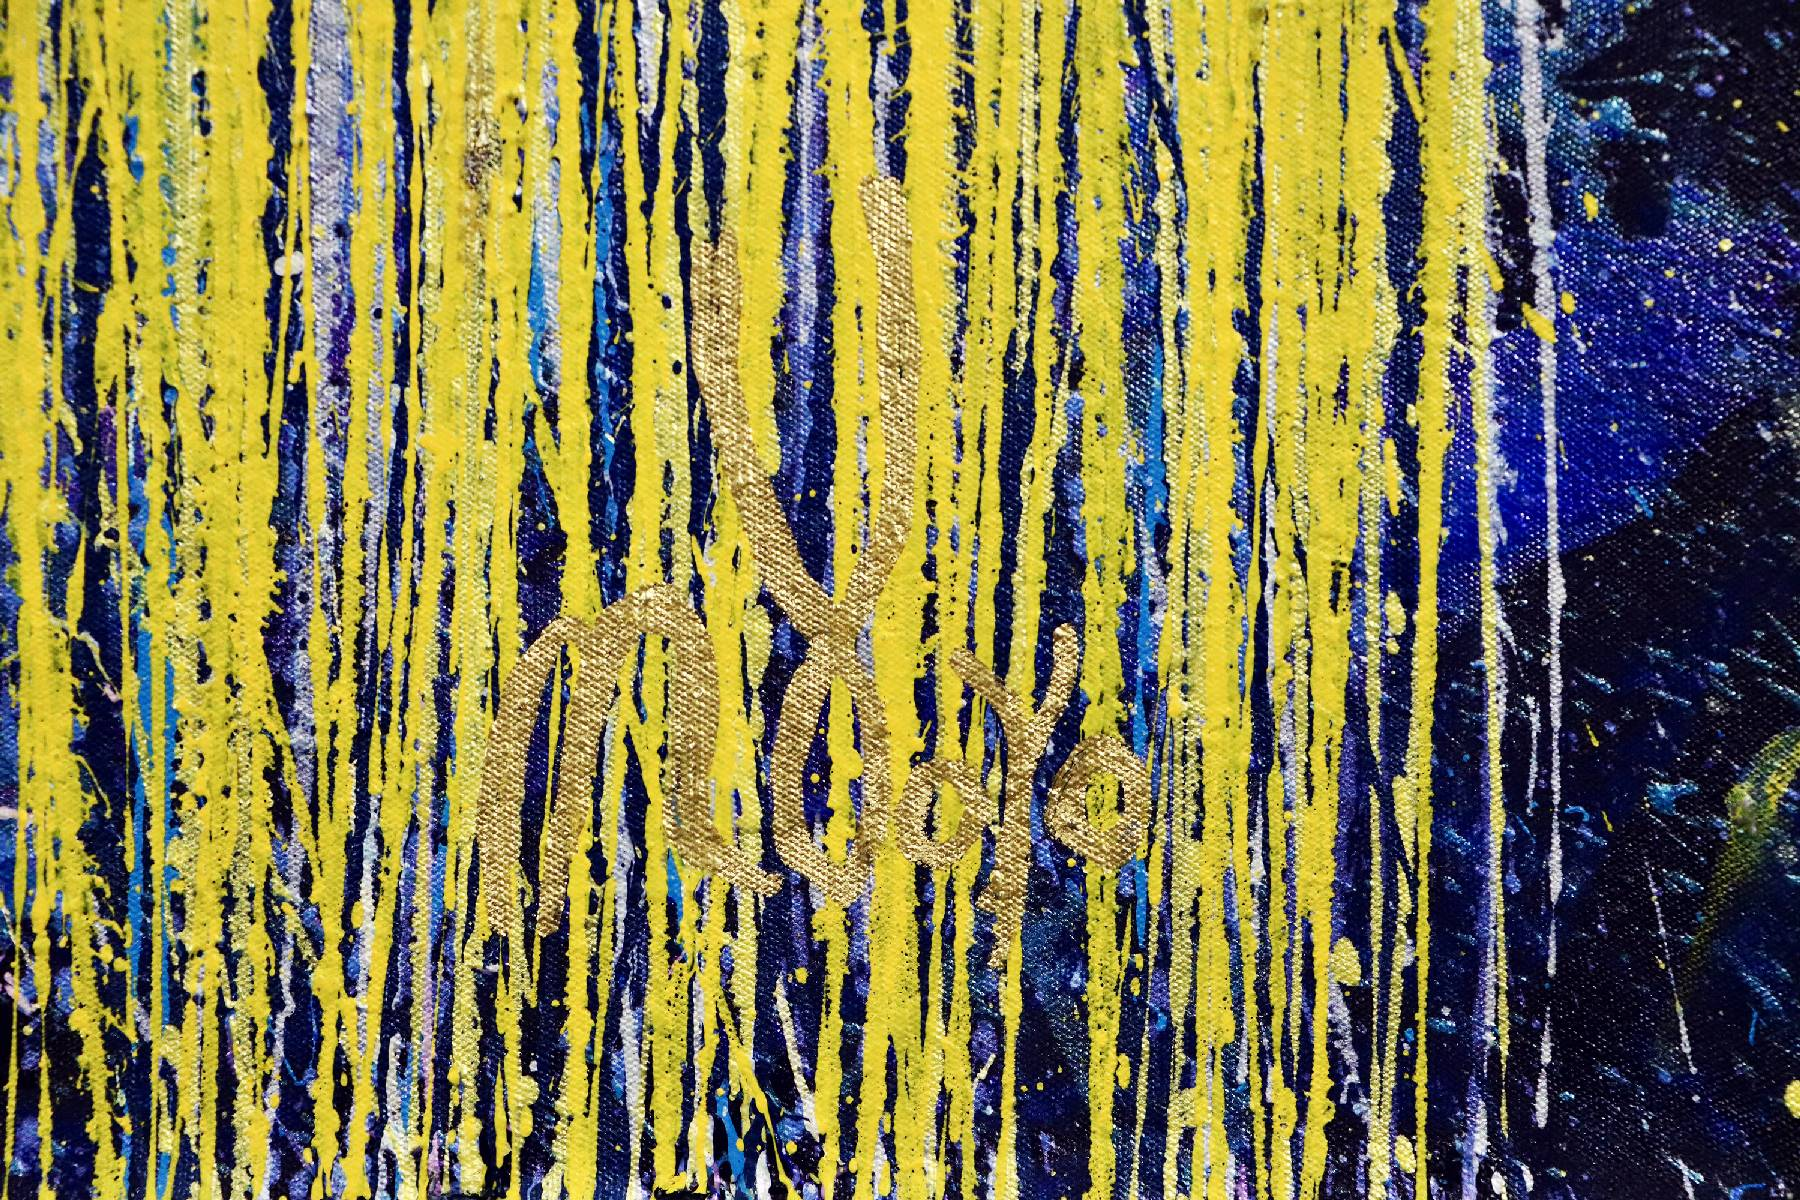 Signature - Detail - Thunder silhouettes (Golden Spectra) 2 (2020) by Nestor Toro / SOLD